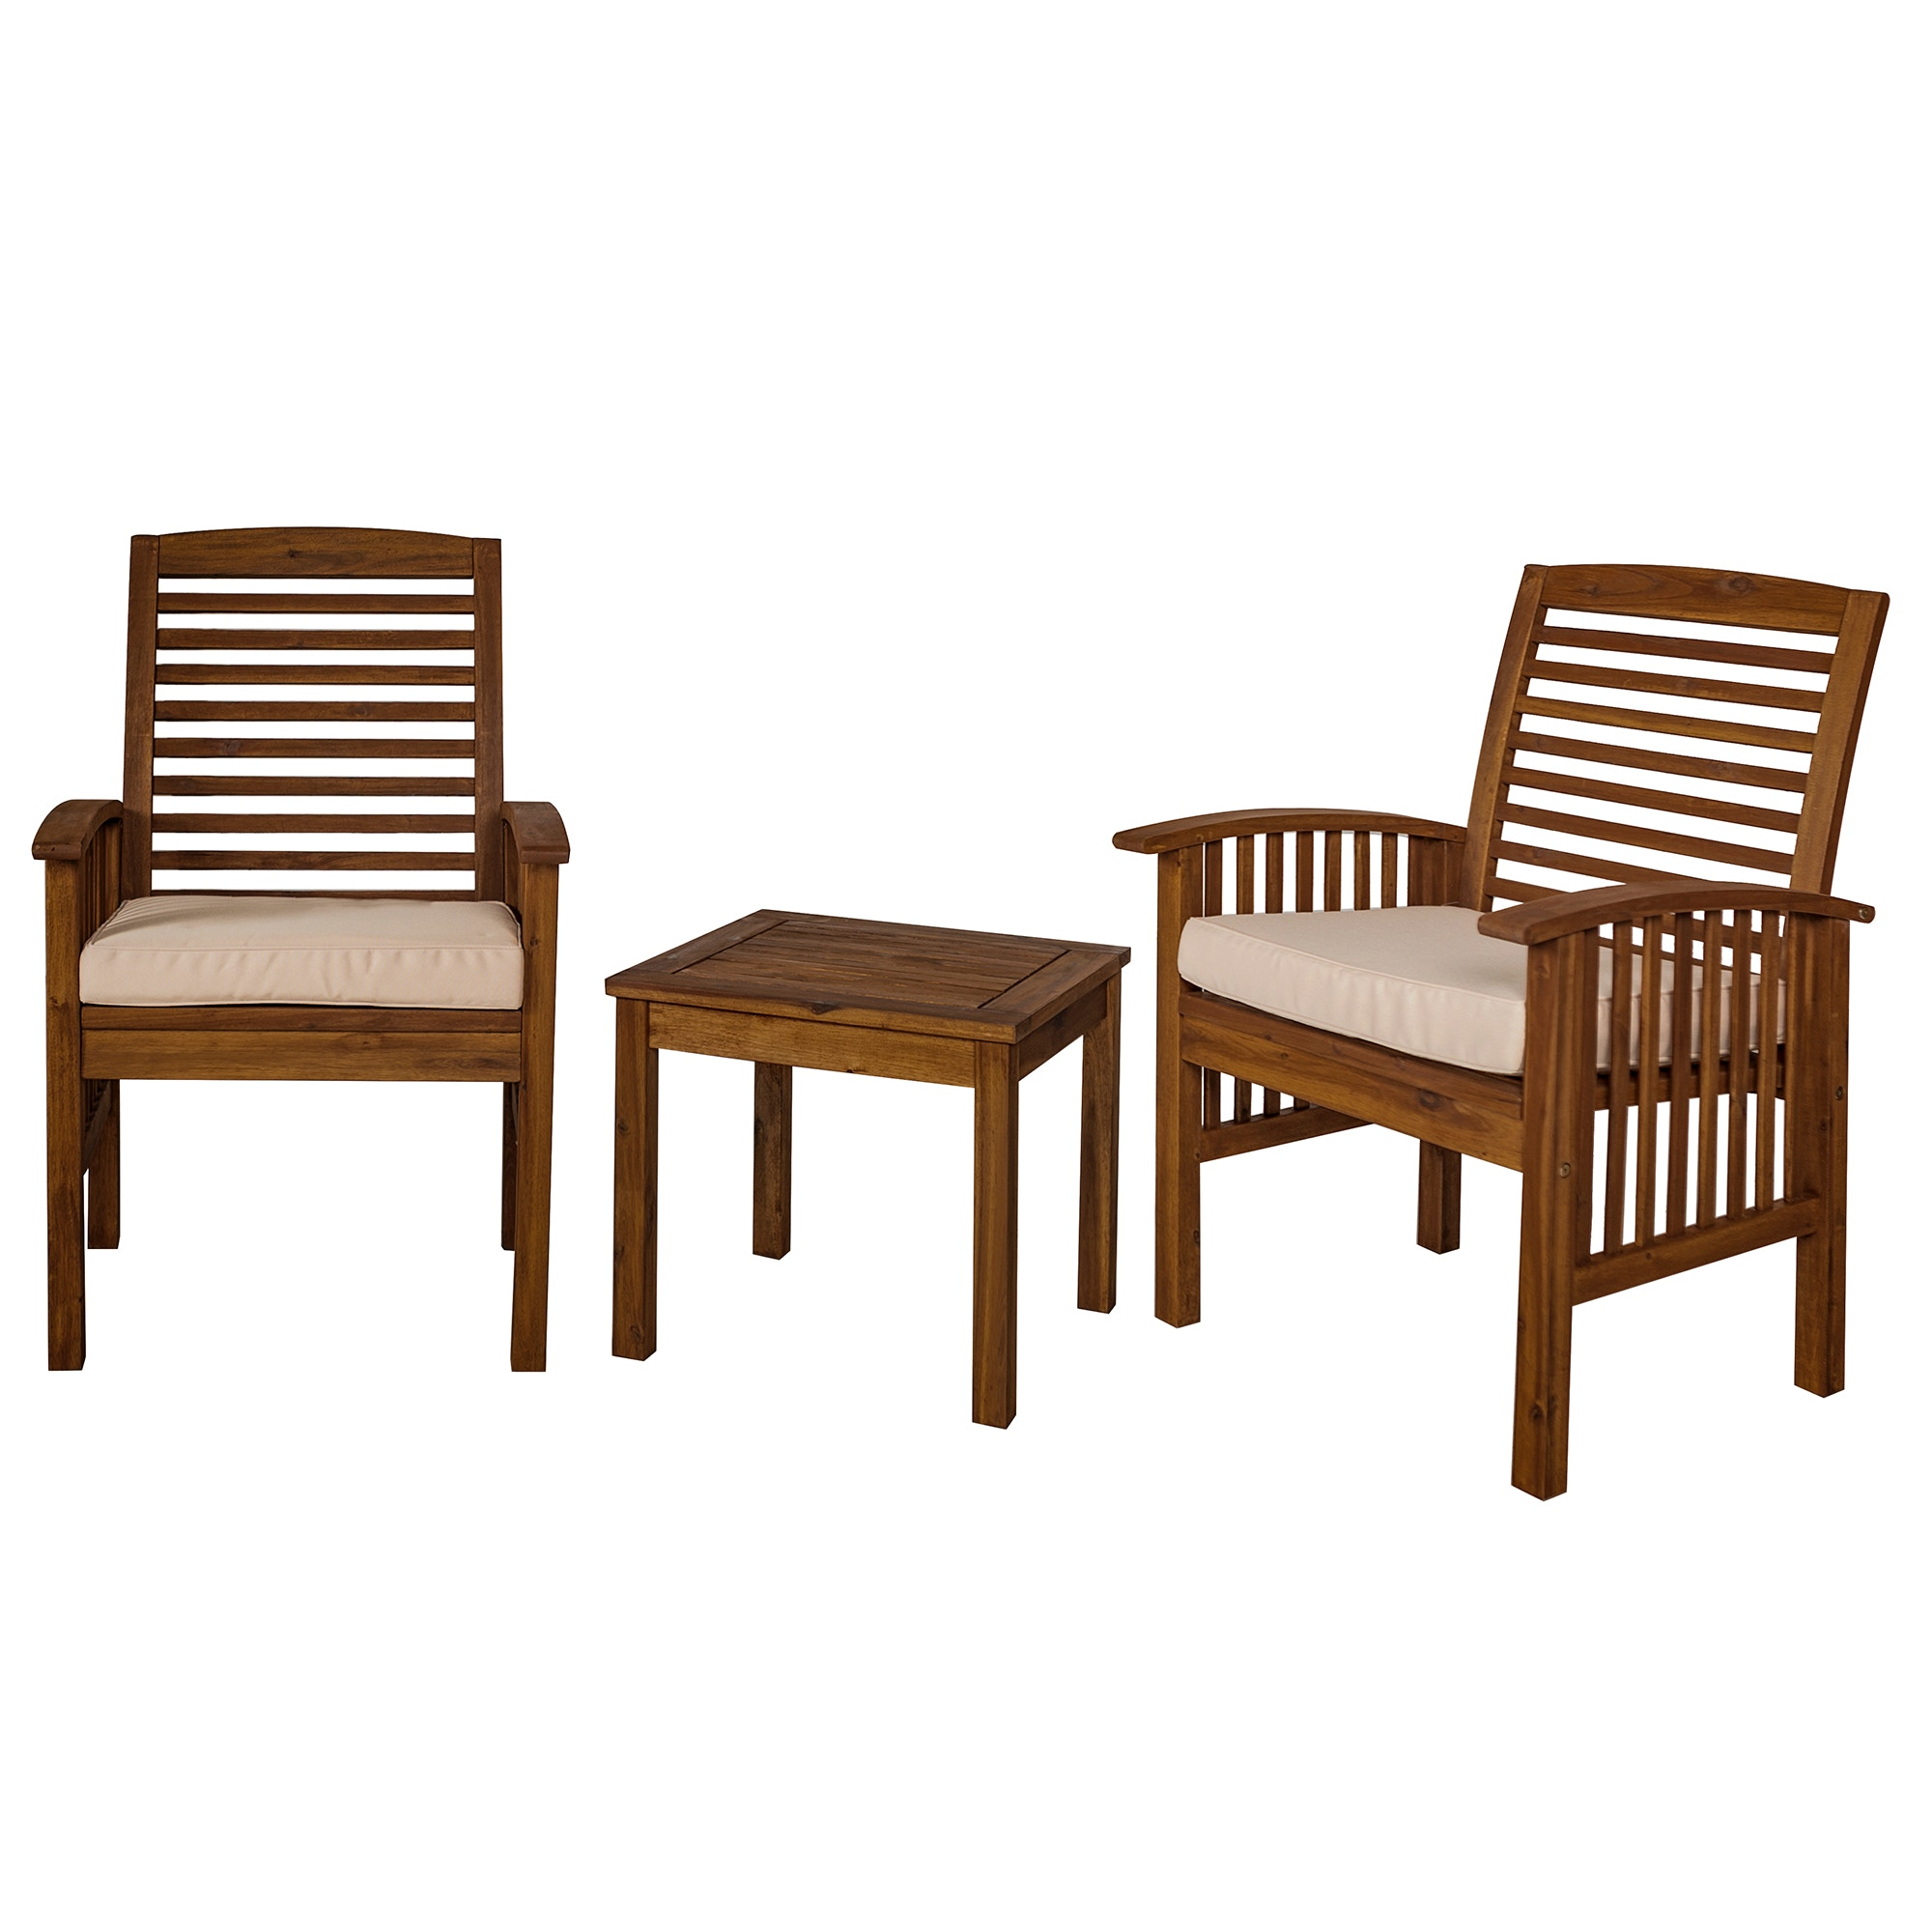 Ft Myers Outdoor Classic Acacia Wood Patio Chairs And Side Table WEDOWC3CGDB